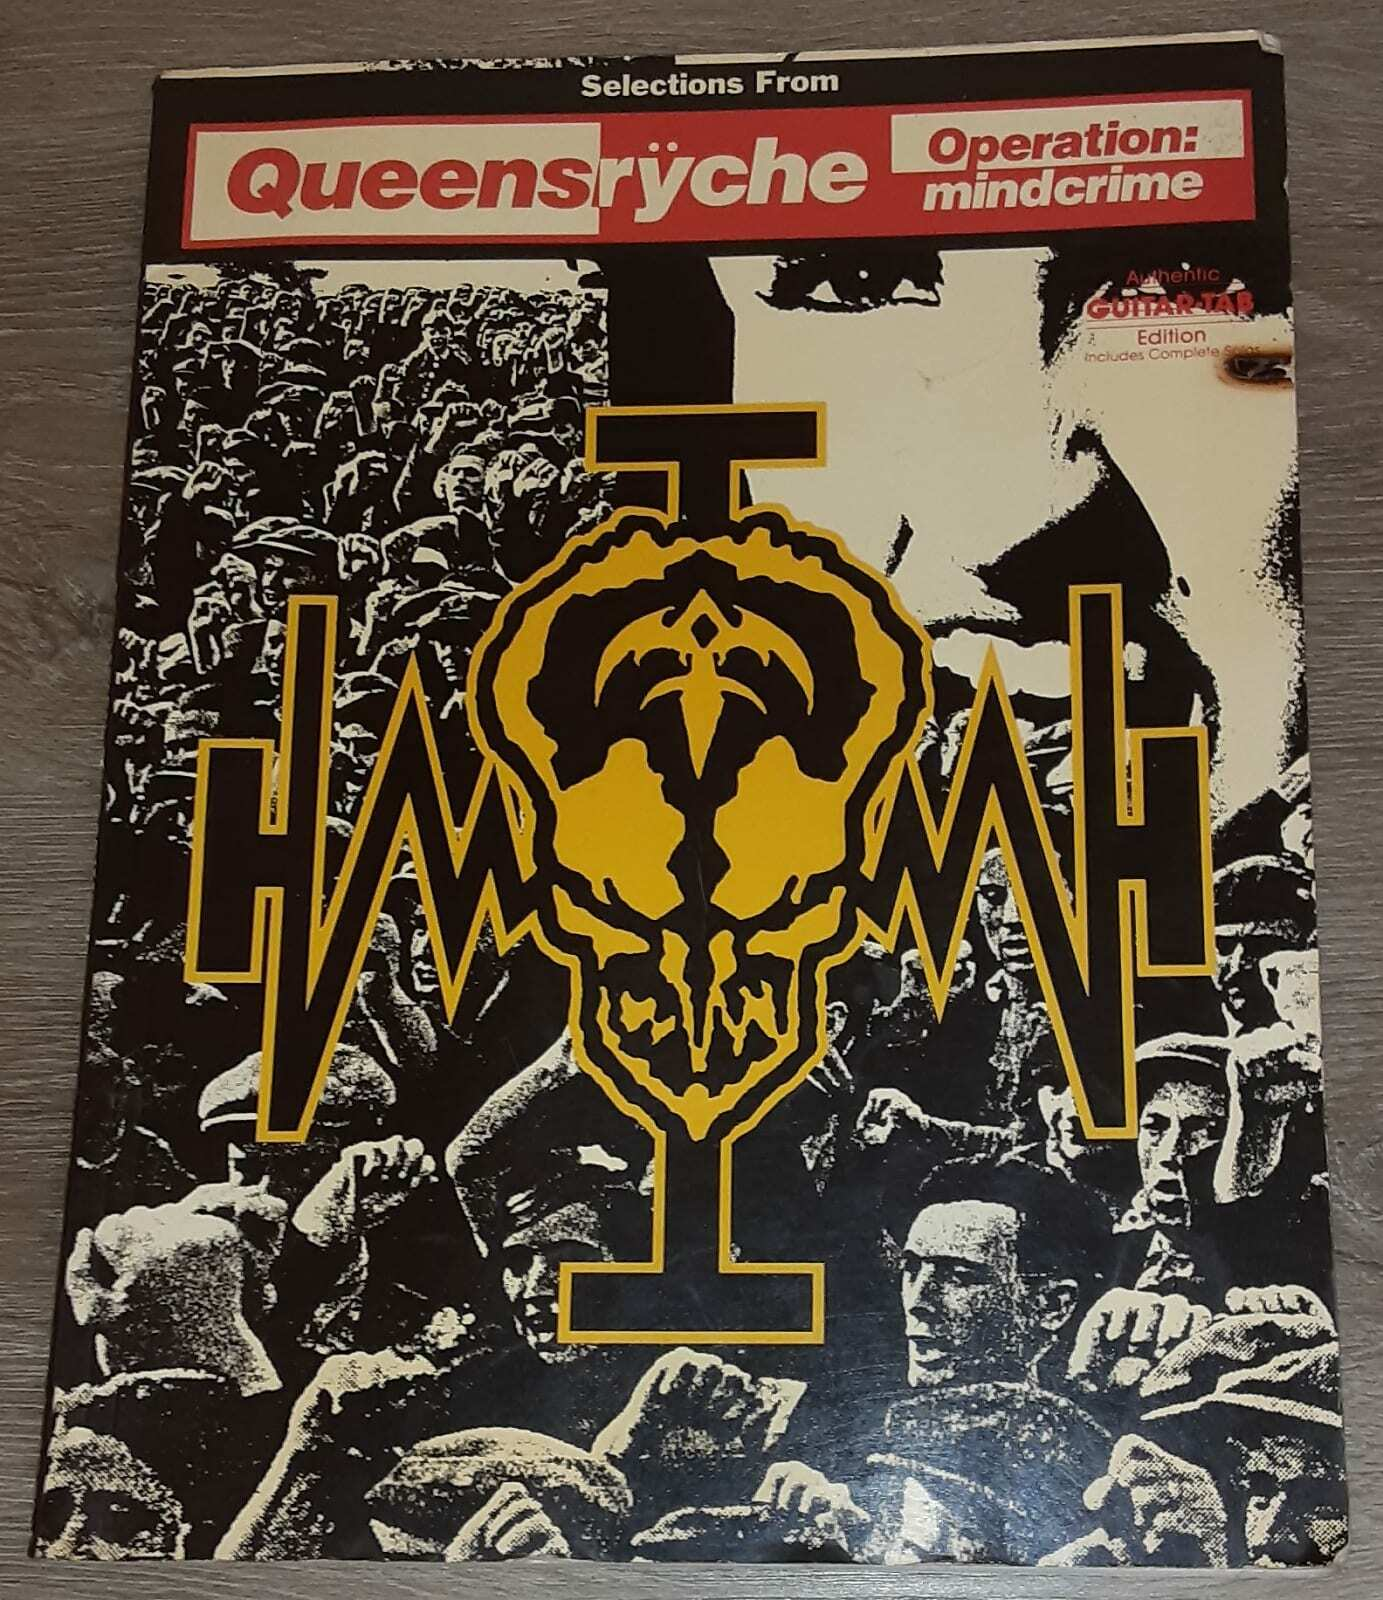 TABLATURE QUEENSRYCHE GUITAR TAB ***BRAND NEW*** QUEENSRYCHE SONGBOOK